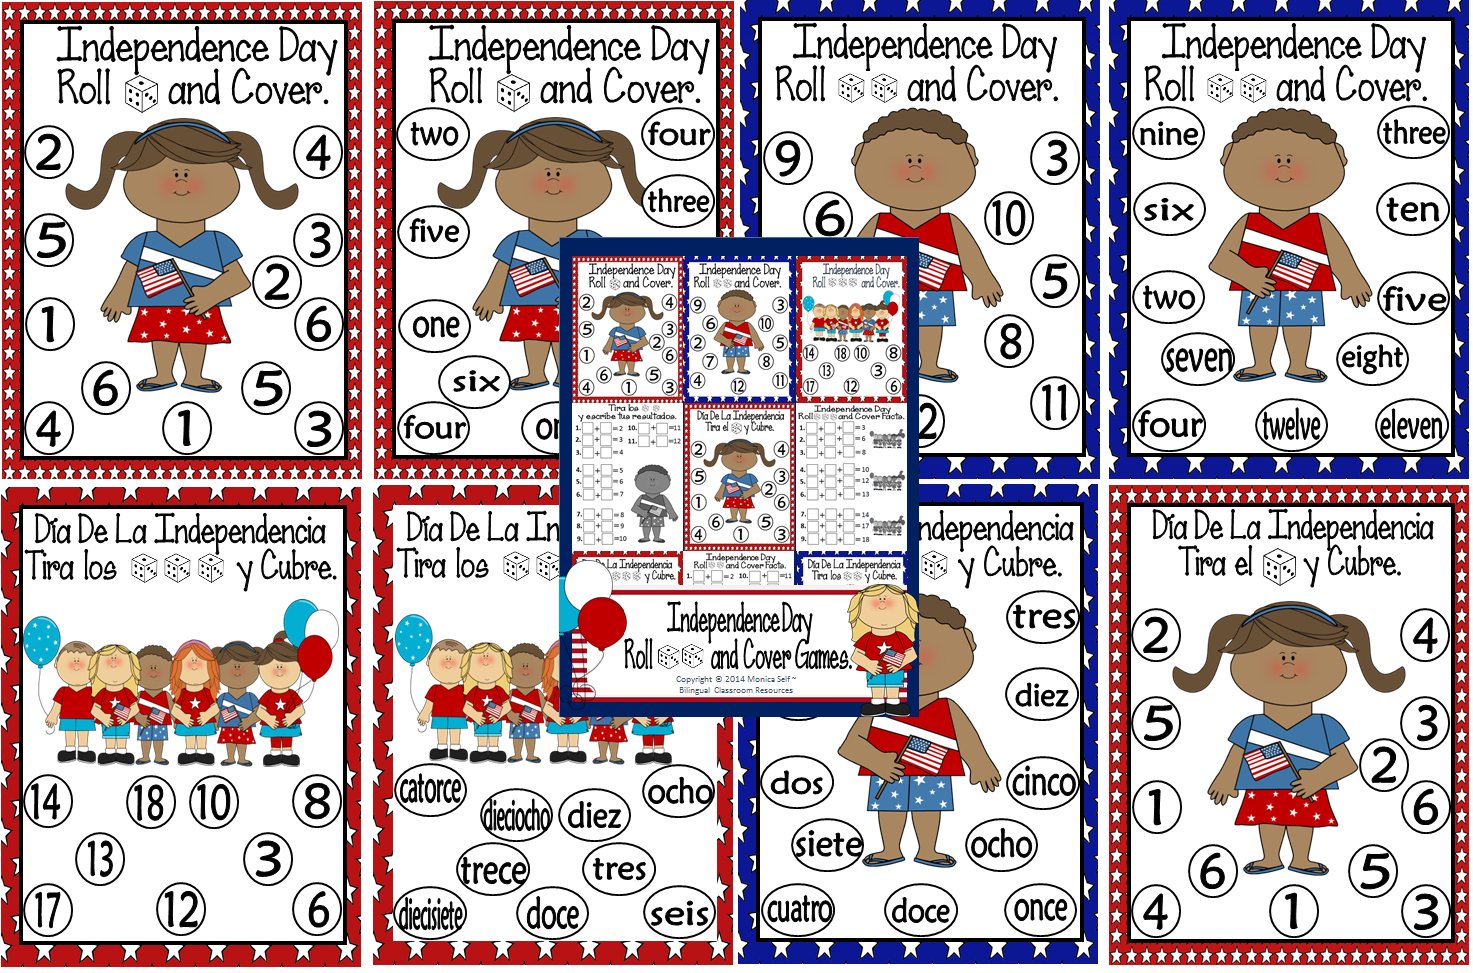 http://www.teacherspayteachers.com/Product/Independence-Day-Roll-and-Cover-Games-1195179